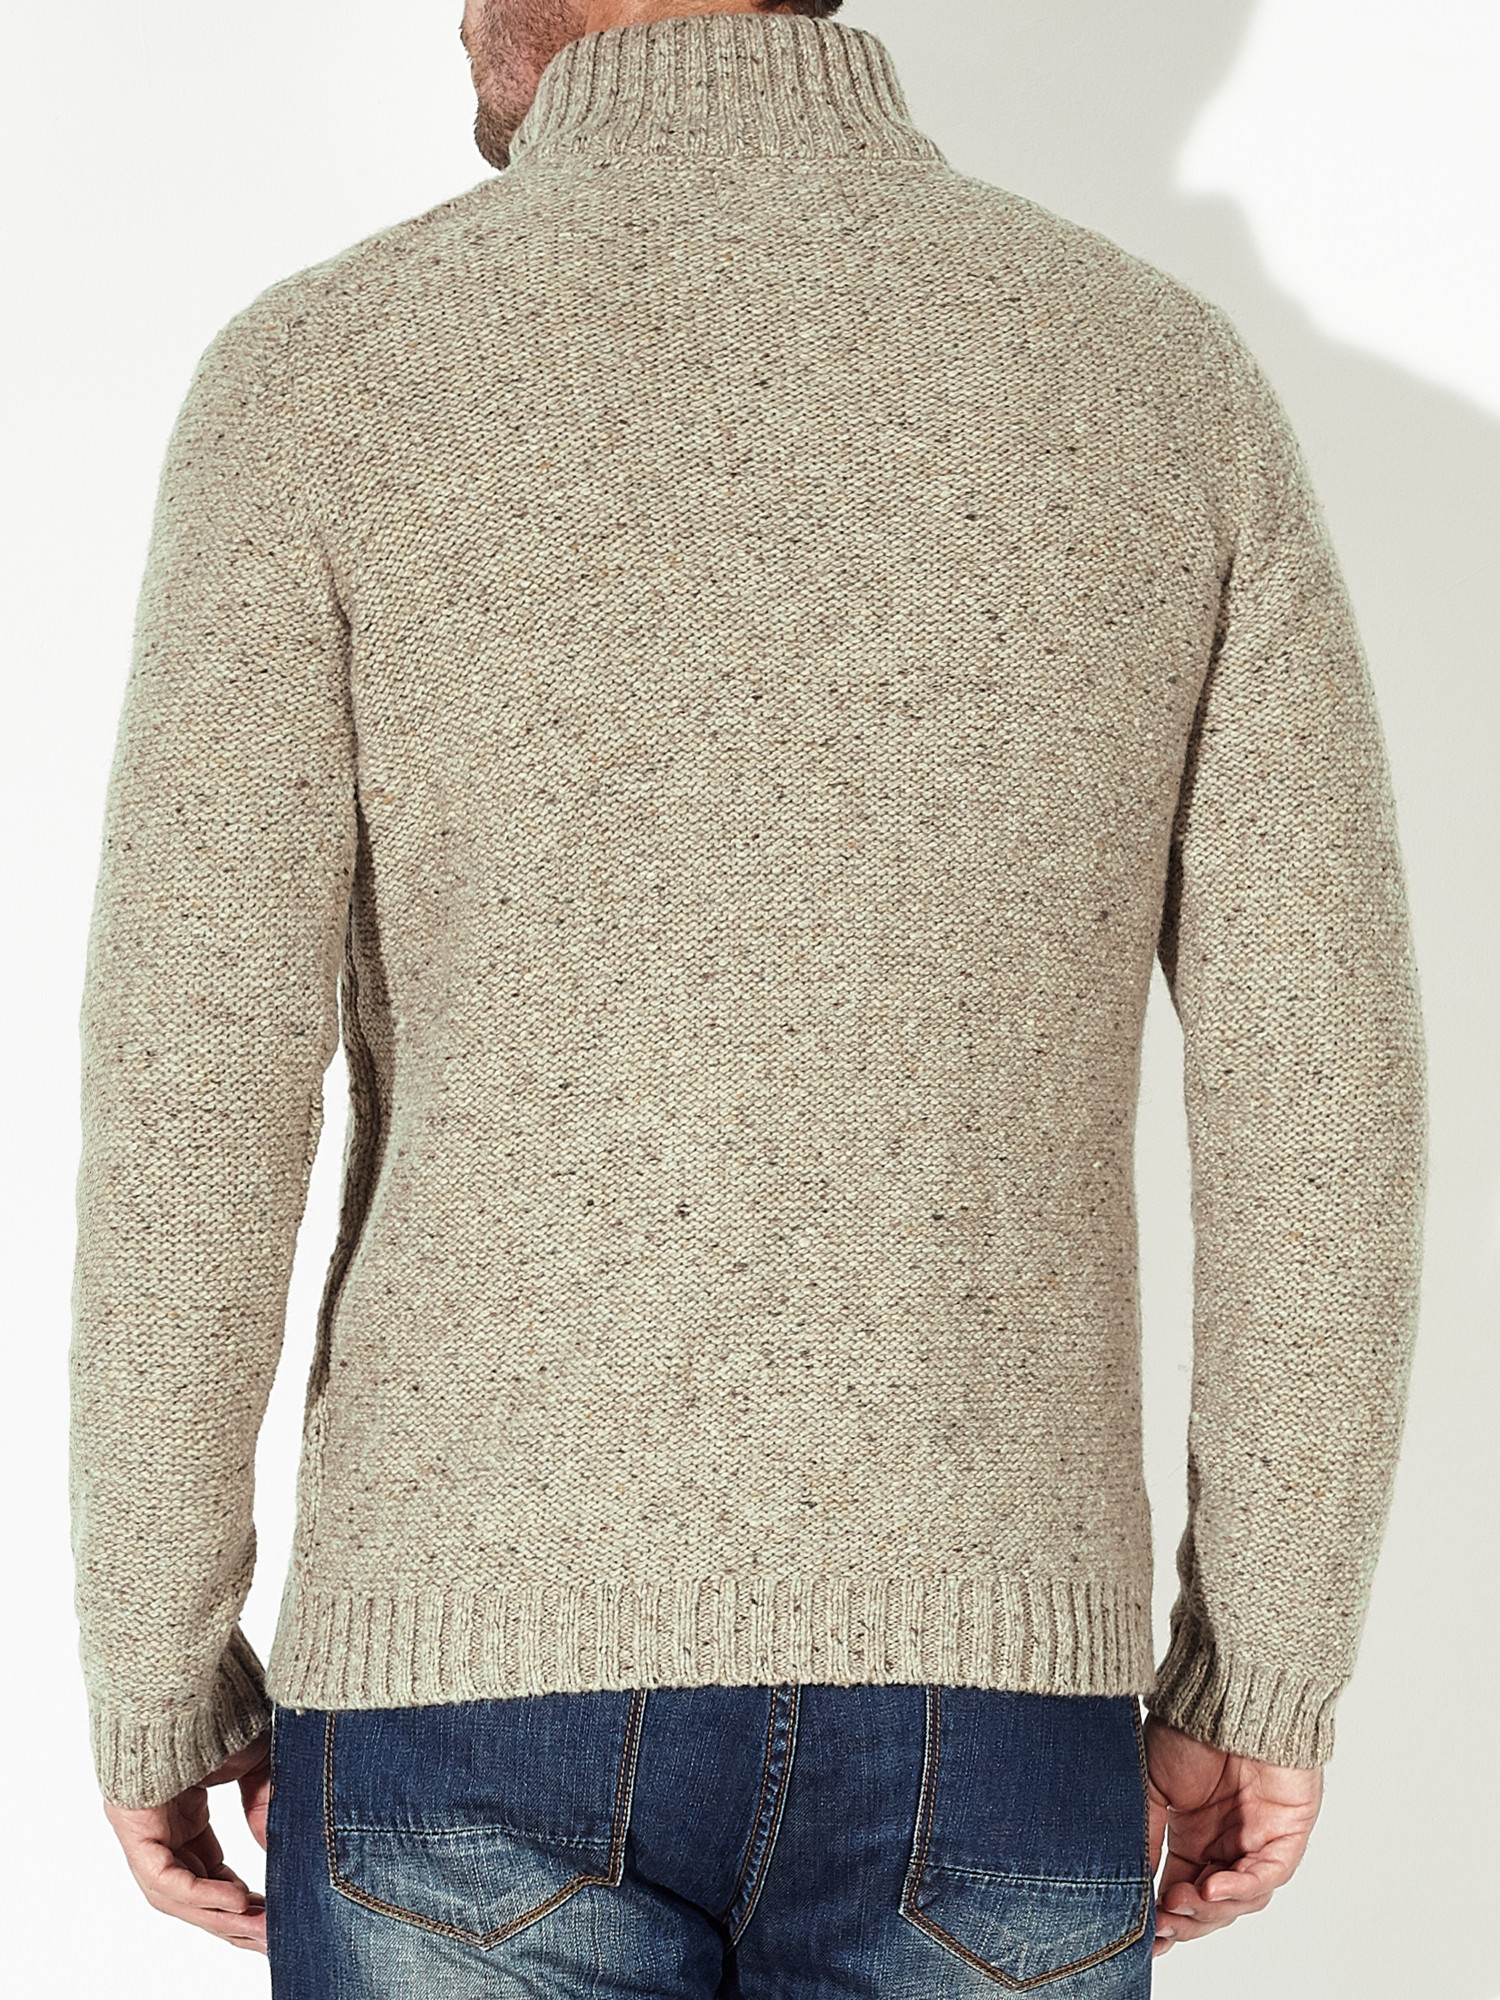 John Lewis Frosty Cable Knit Zip Neck Jumper in Light (Natural) for Men